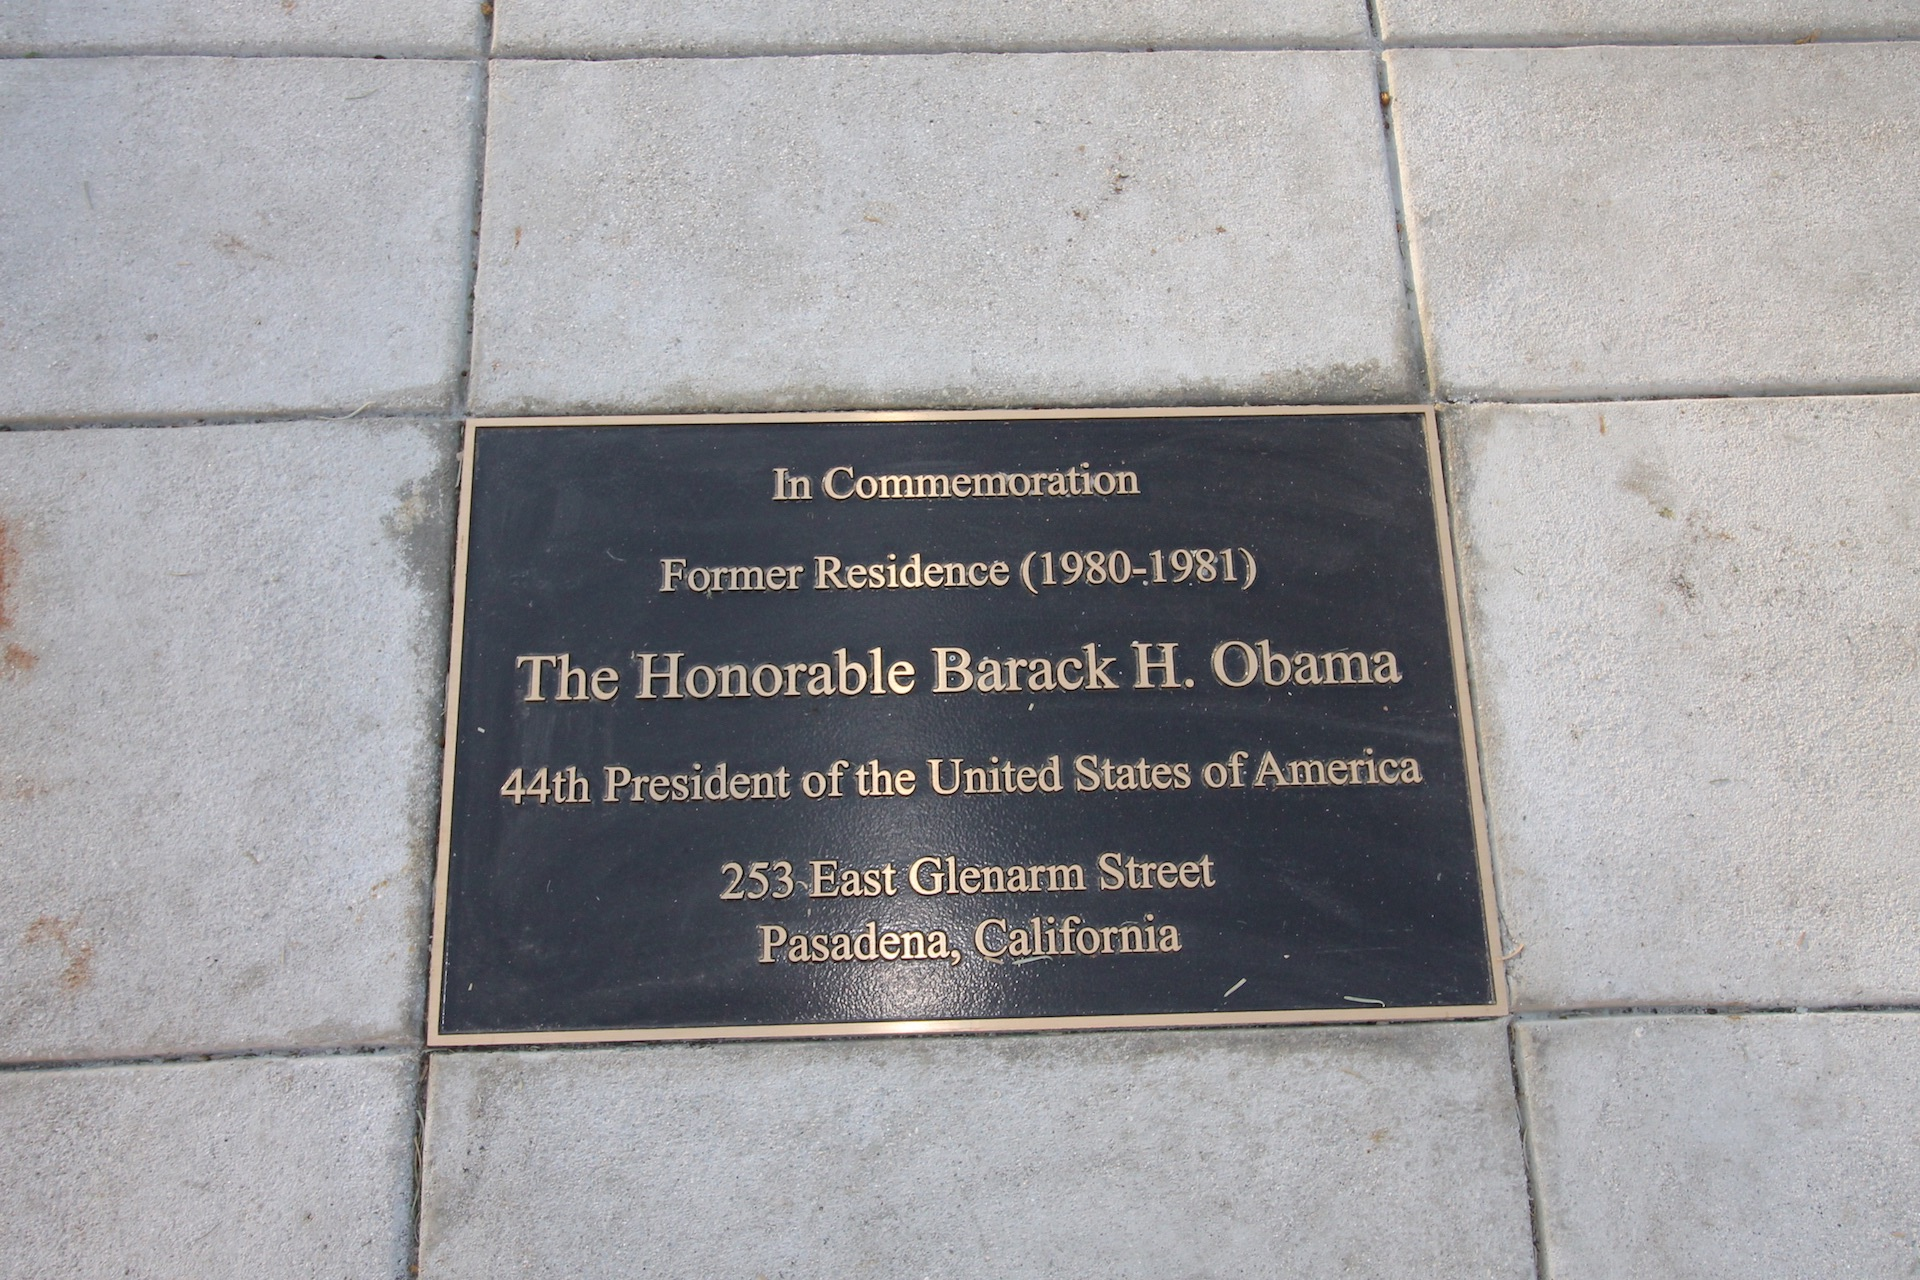 The City of Pasadena placed a plaque in front of the apartment building where President Obama lived in Pasadena (2017).